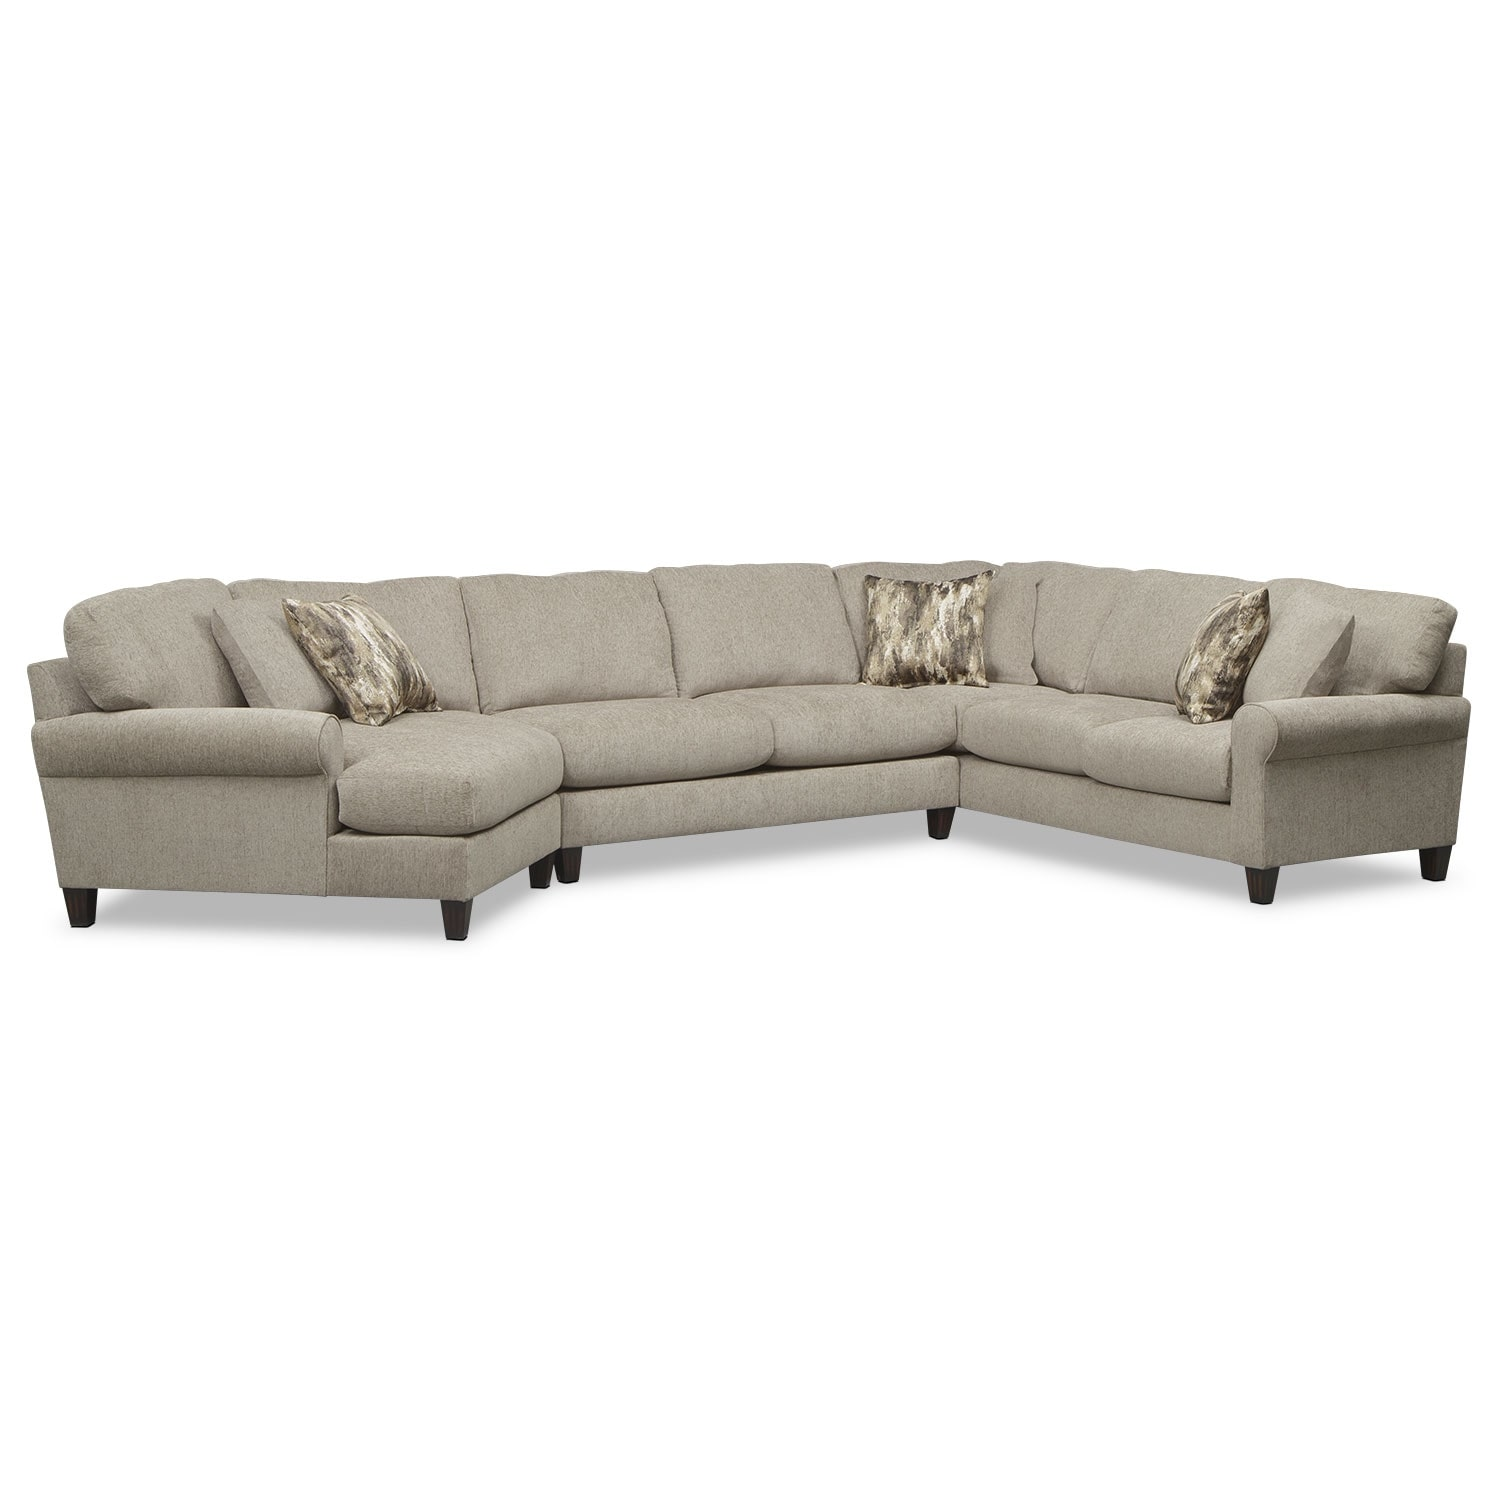 Karma Mink 3 Pc. Sectional with Left-Facing Cuddler